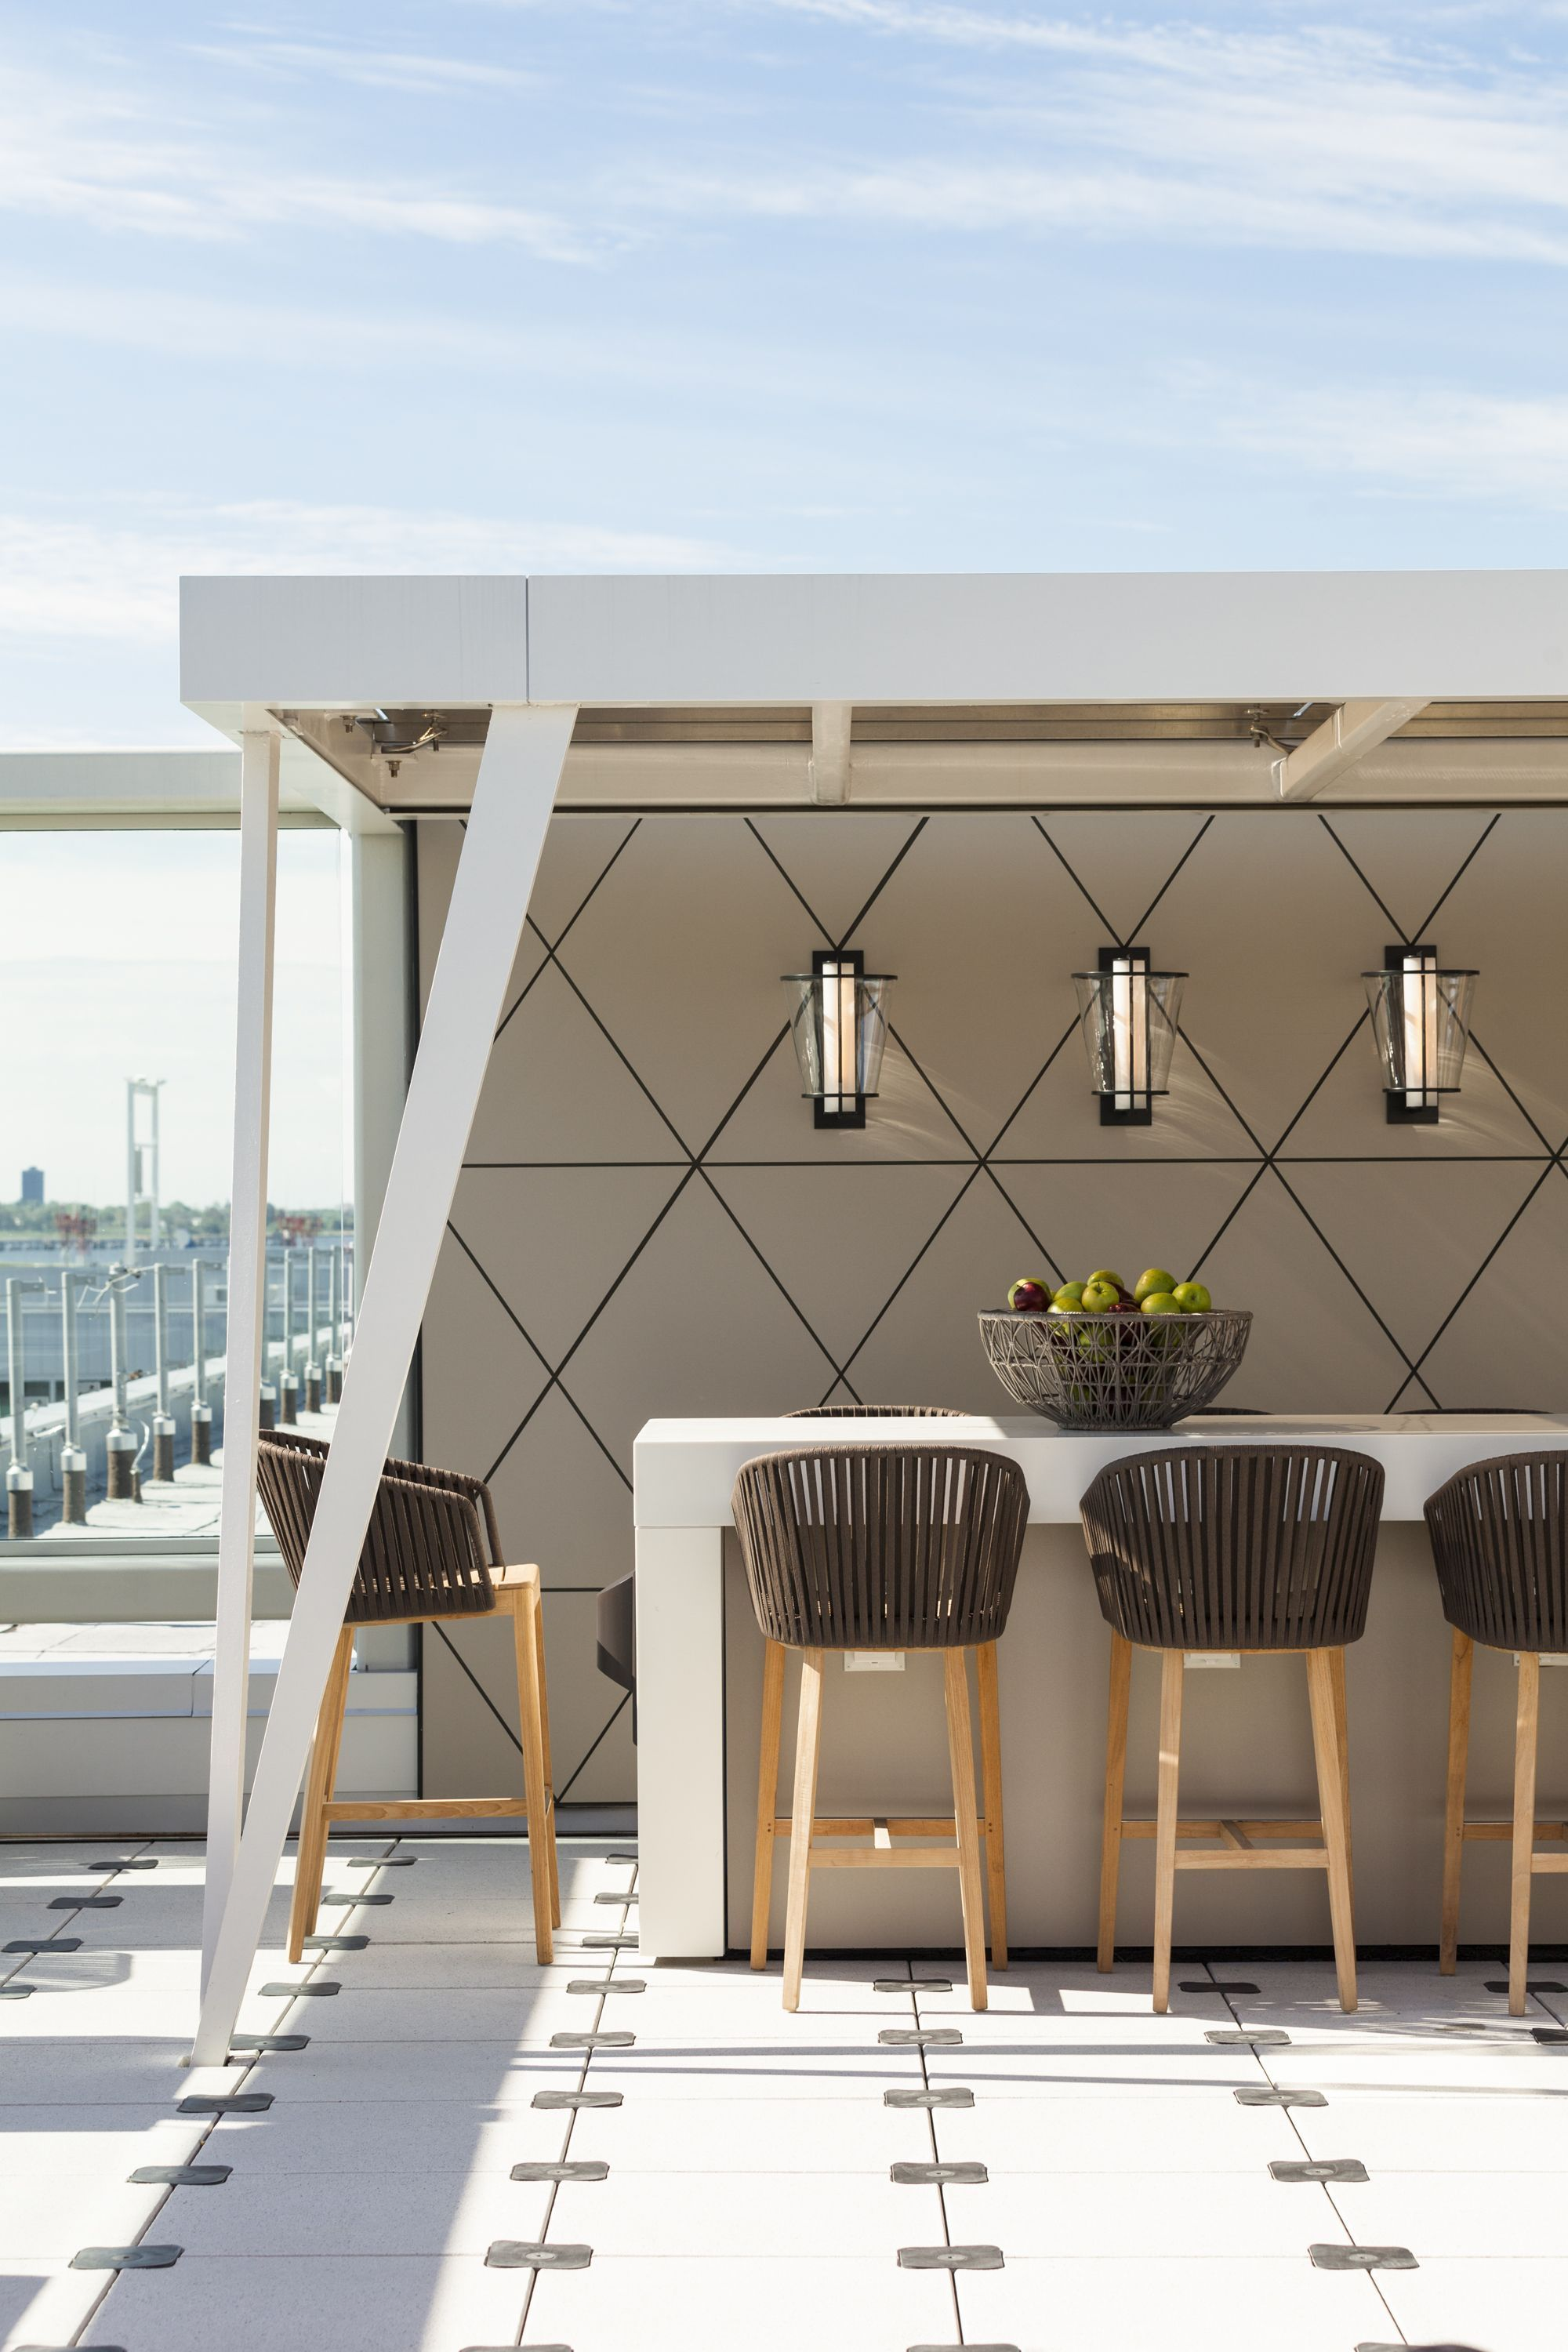 Usa Contemporary Home Decor And Mid Century Modern Lighting Ideas From Delightfull Http Www Deligh Outdoor Restaurant Patio Rooftop Design Restaurant Patio Modern backyard bar ideas